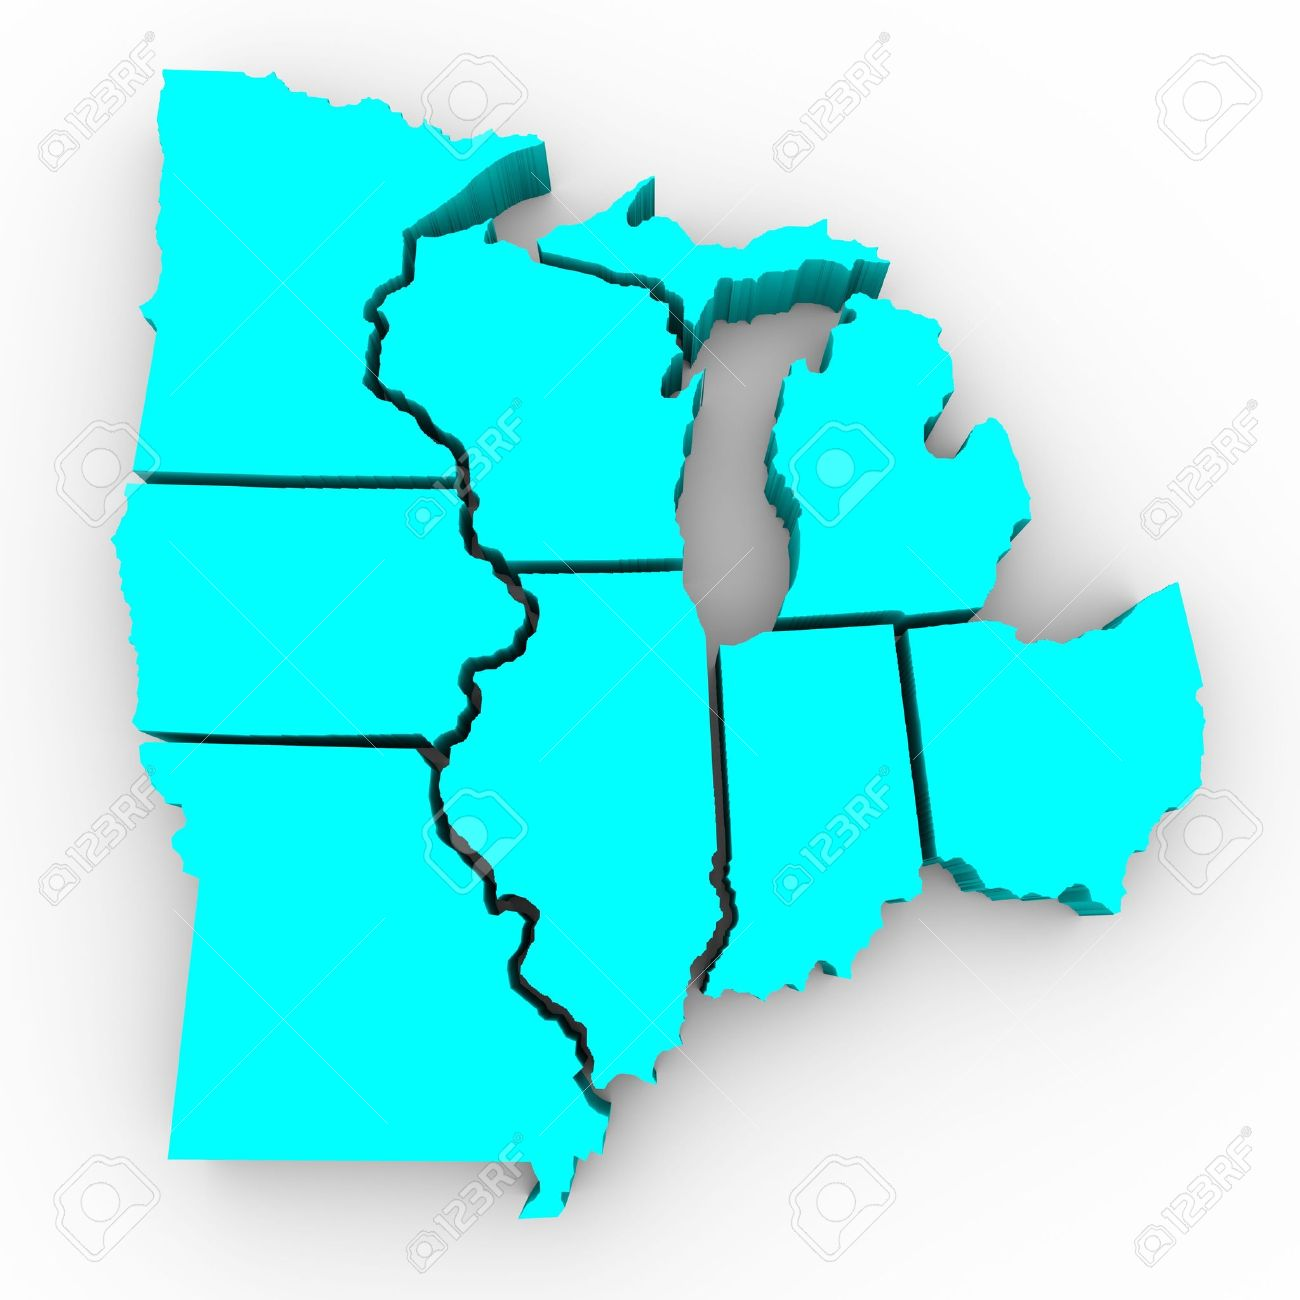 Michigan And Indiana Map.A 3d Map Of The Great Lakes Region Of States Michigan Ohio